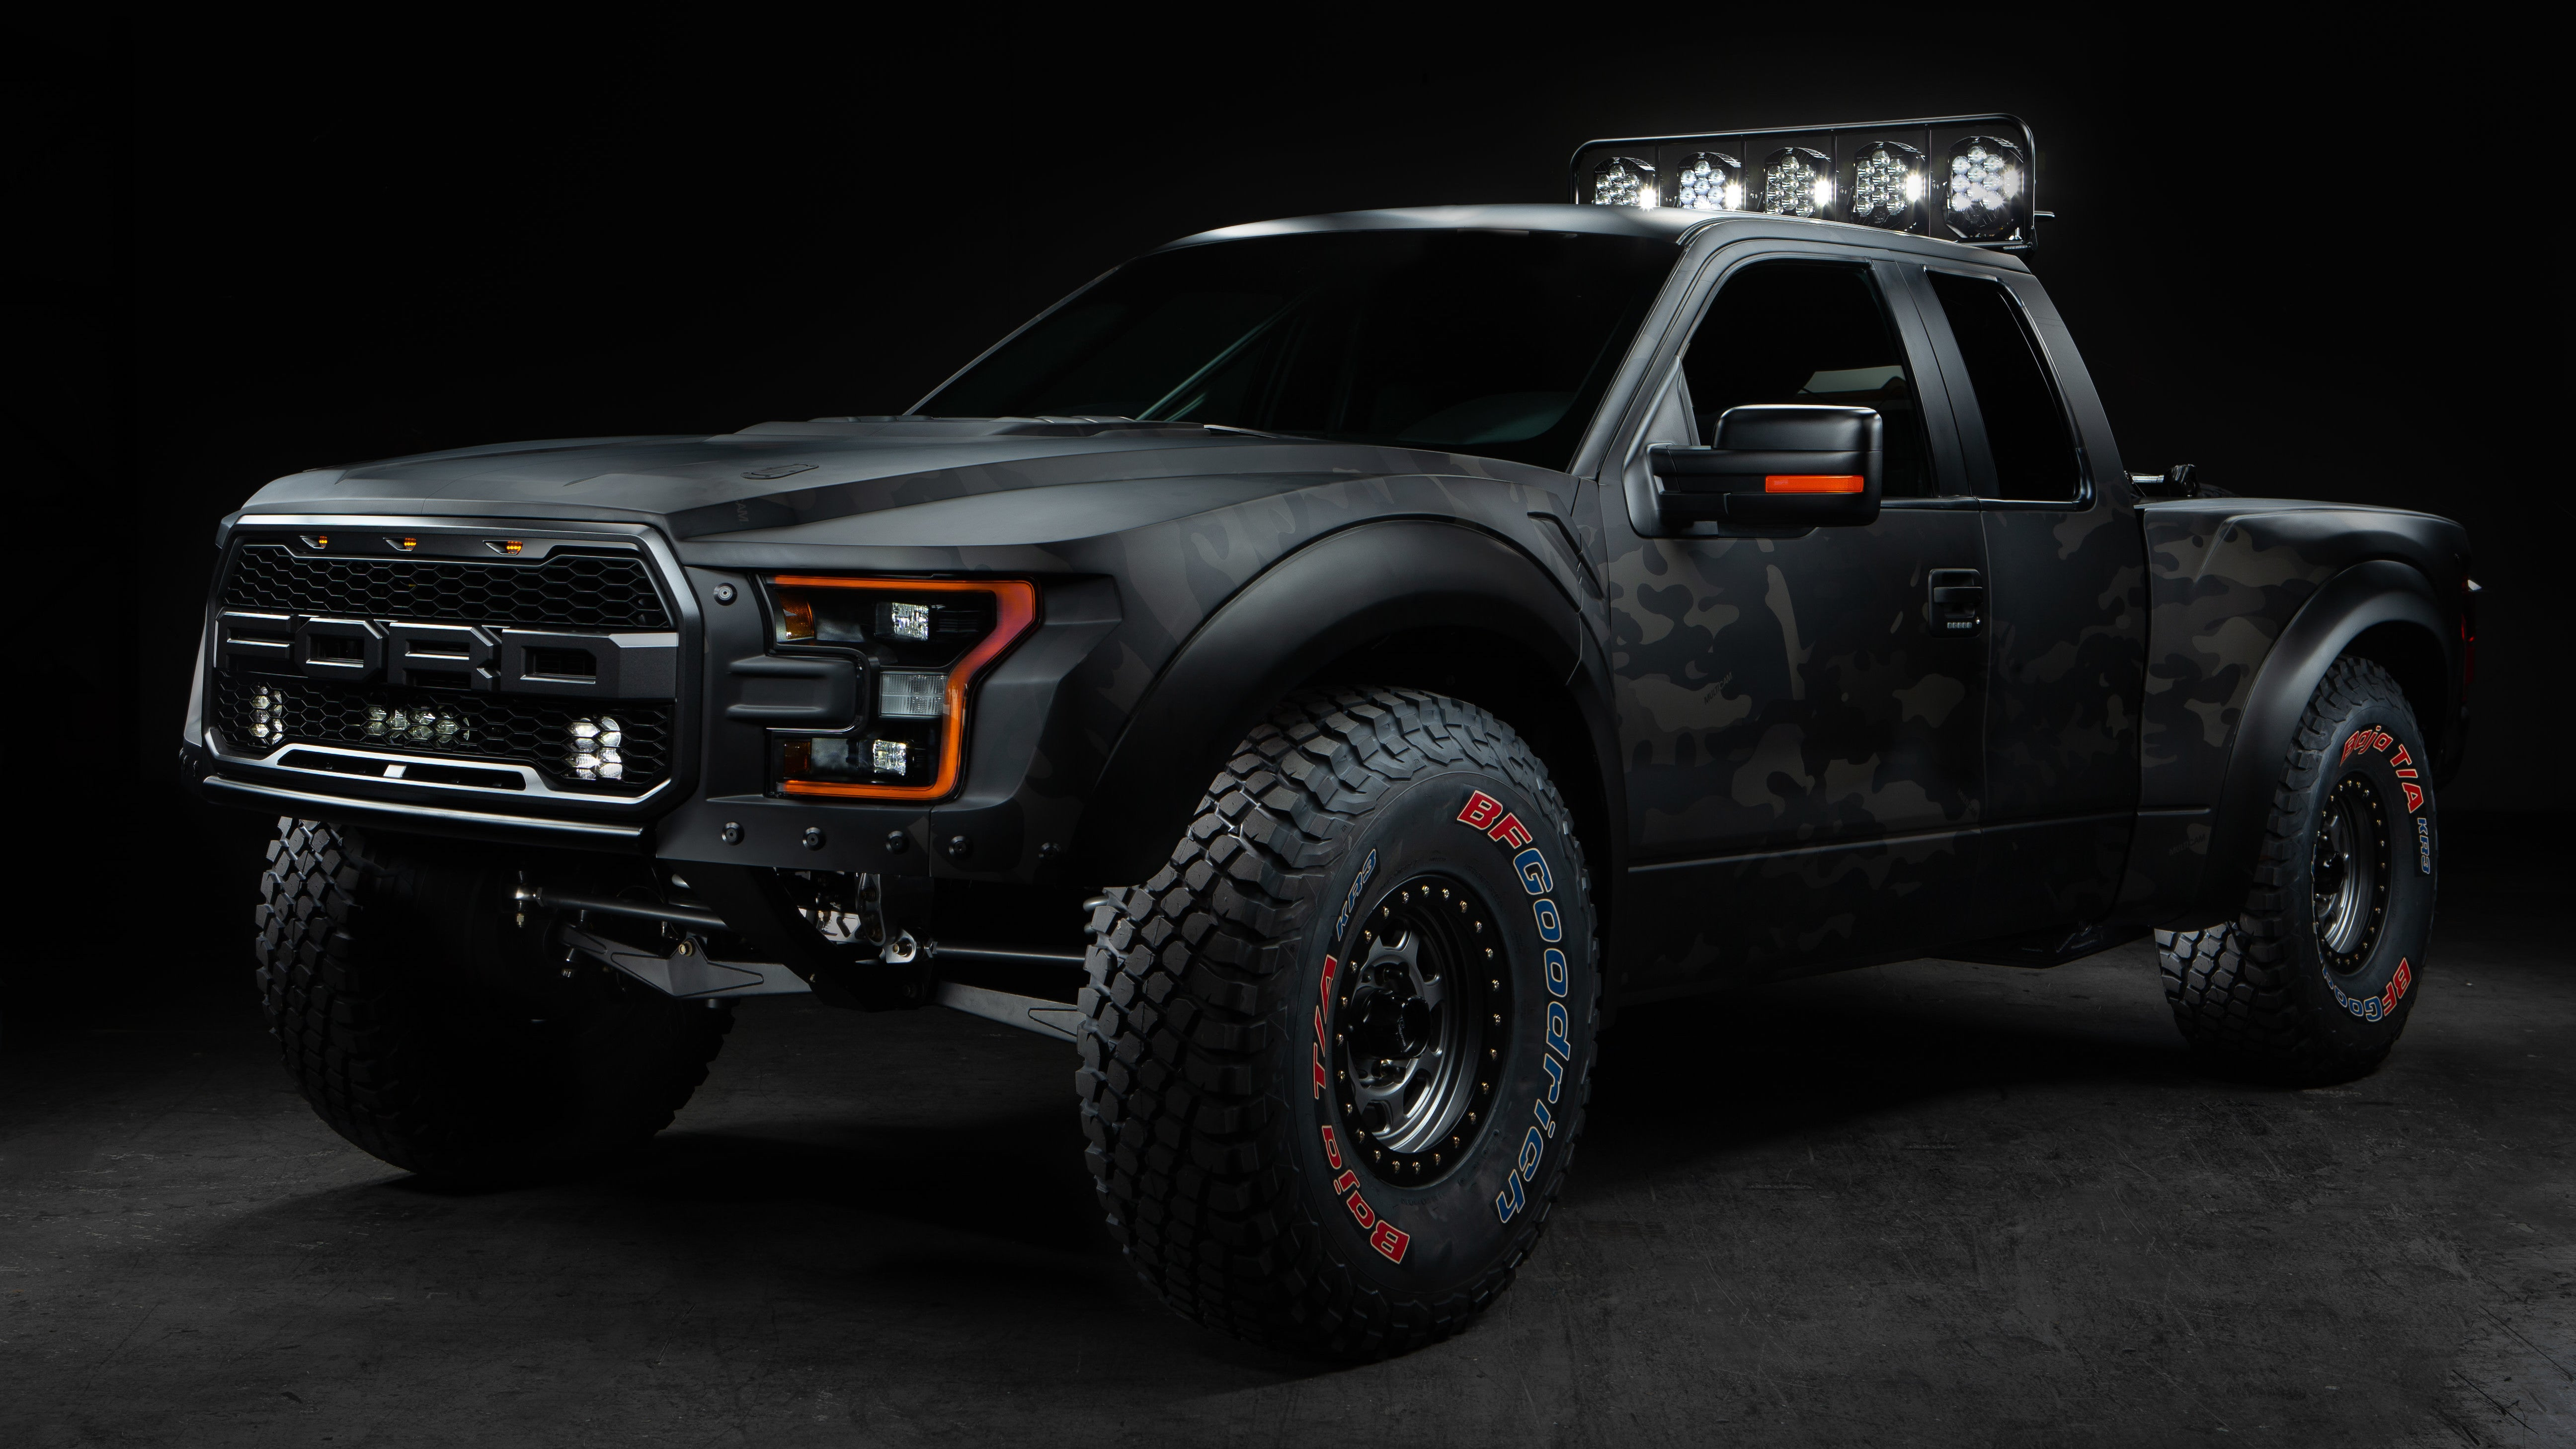 A Luxury Prerunner Like This Is Basically An Off-Road Supercar